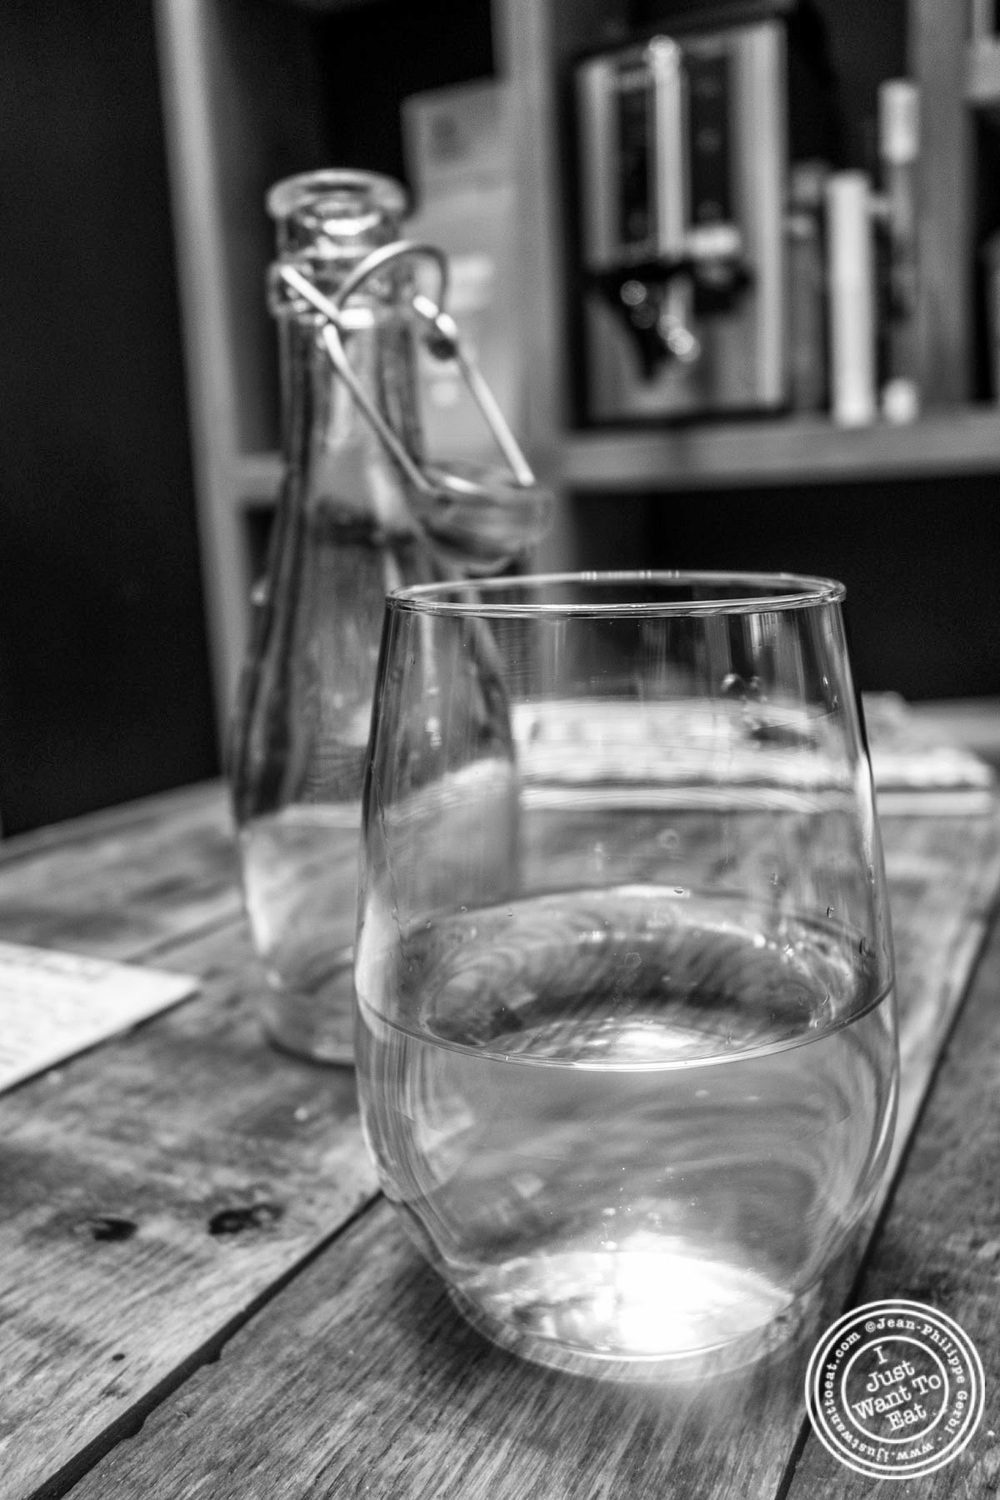 image of glass of water at Hogar Dulce Hogar, a Basque Bakery in Soho